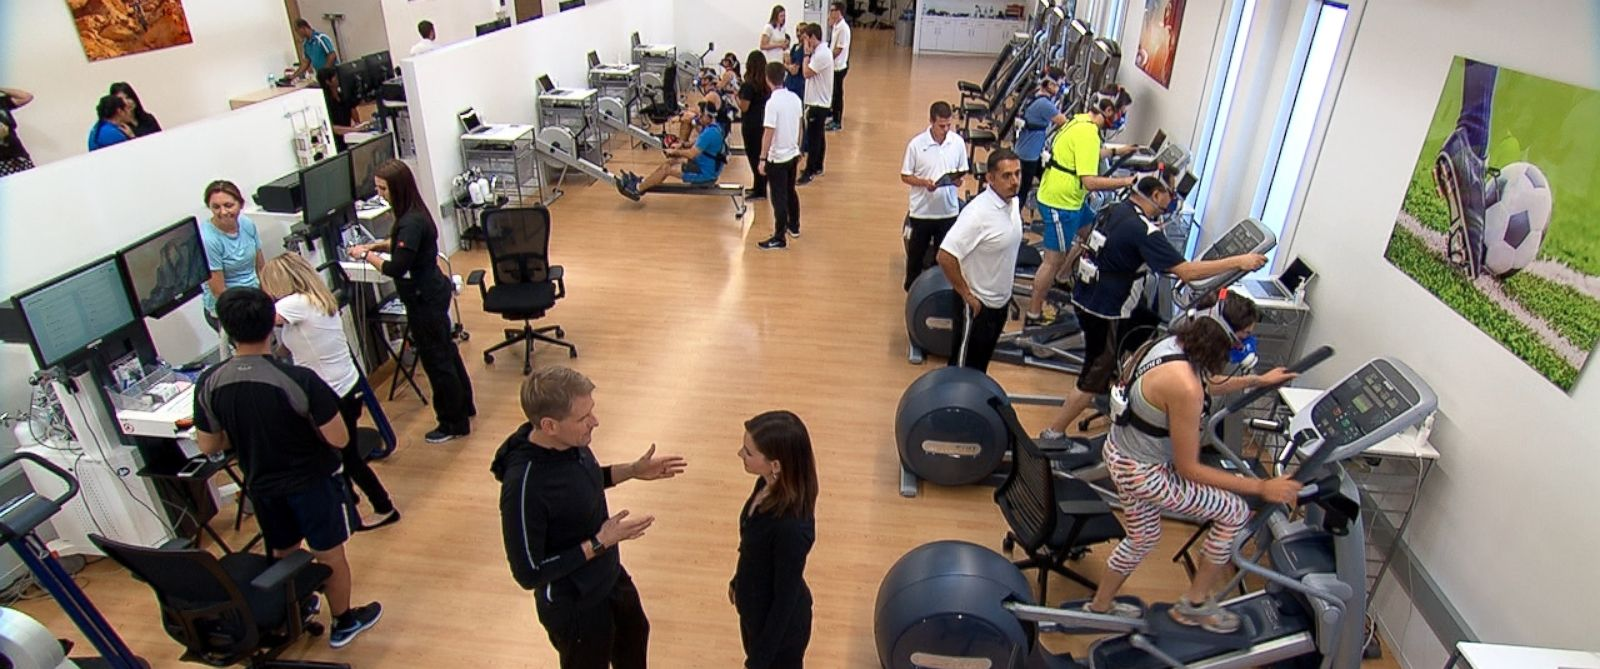 ABCs Rebecca Jarvis talks with Apples Jay Blahnik inside the companys top secret health and fitness lab used in developing the Apple Watch.